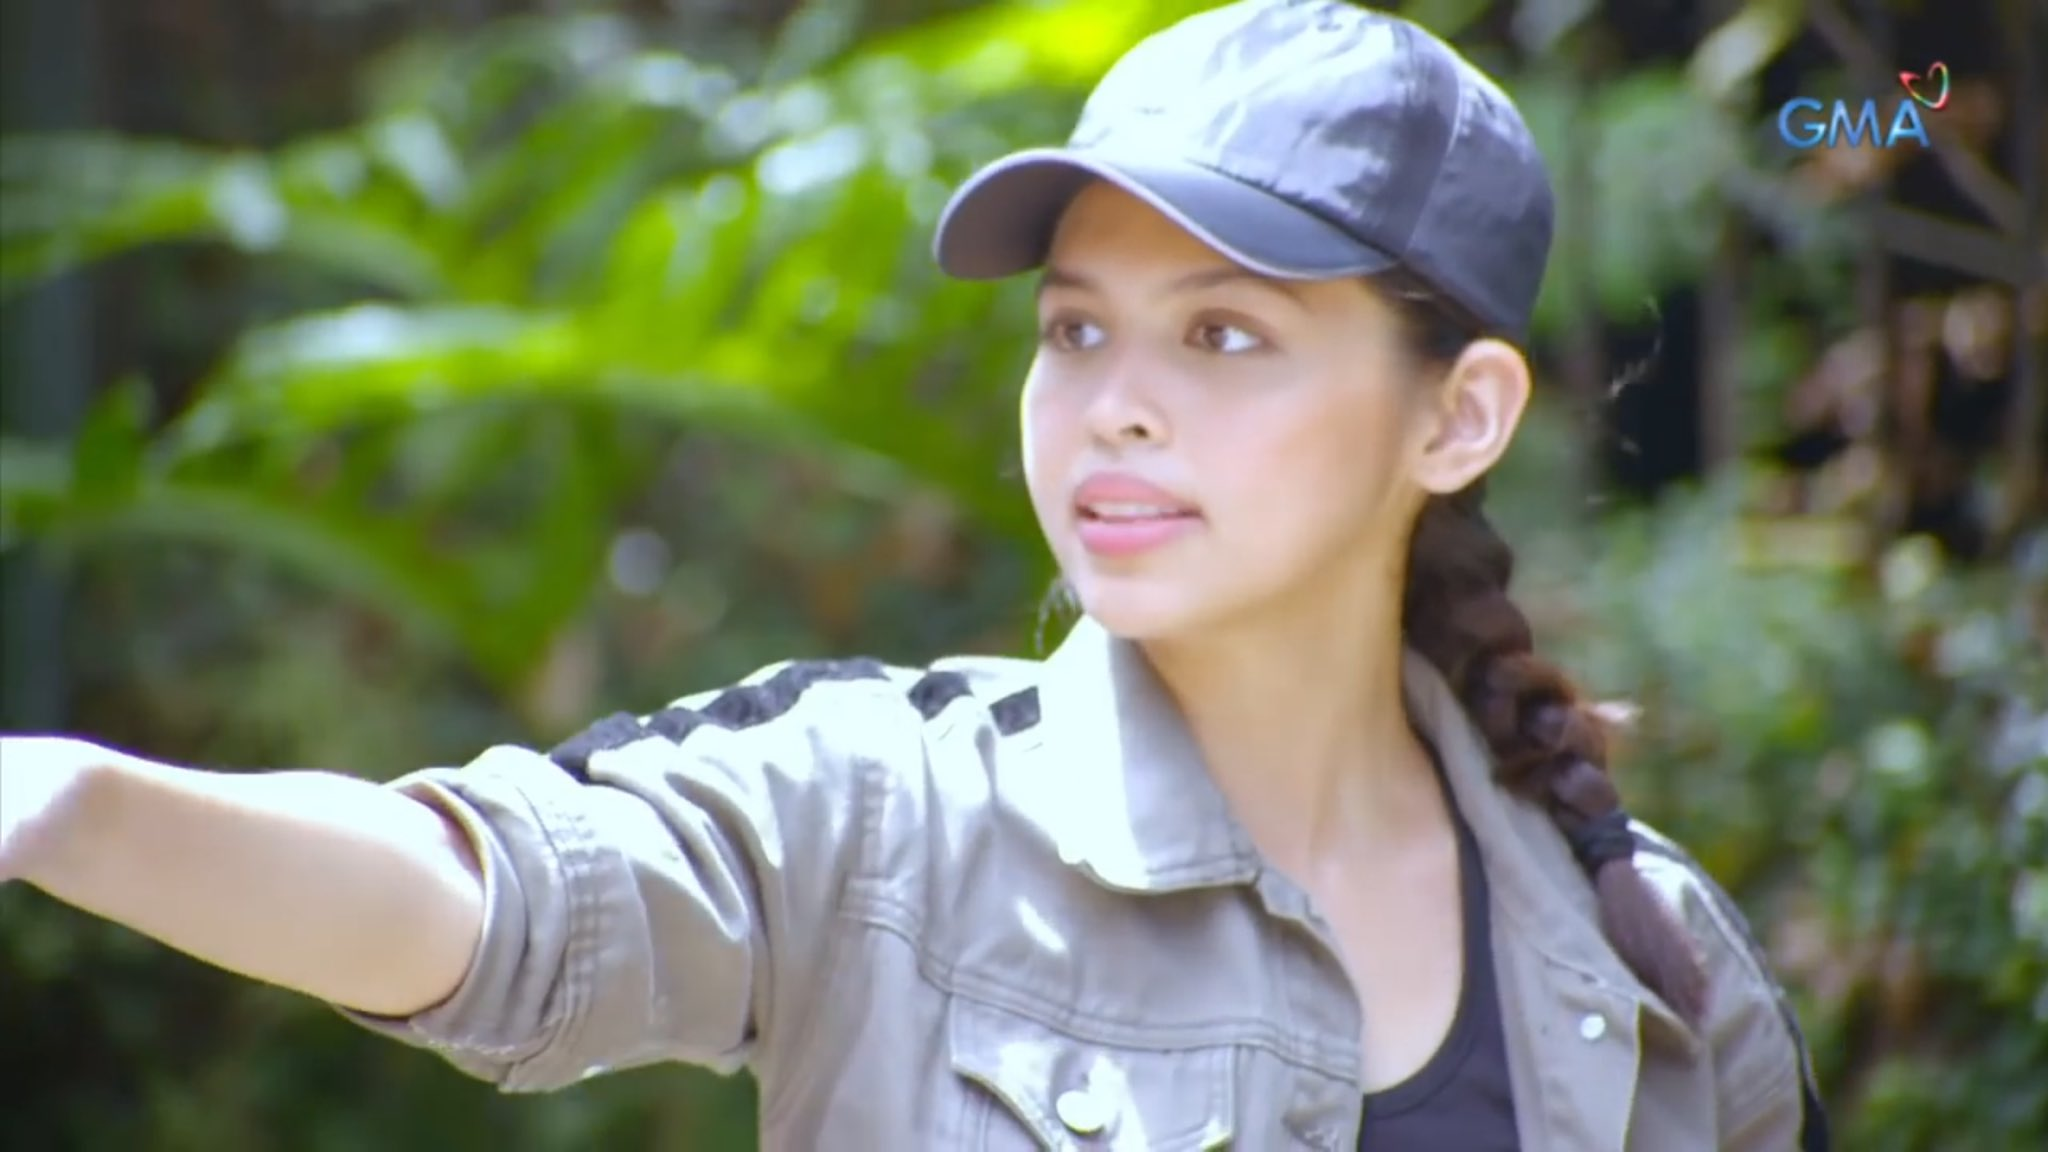 And we are waiting for you Laura @mainedcm   #MaineHeroOnDaig https://t.co/WOYOhqOgSg